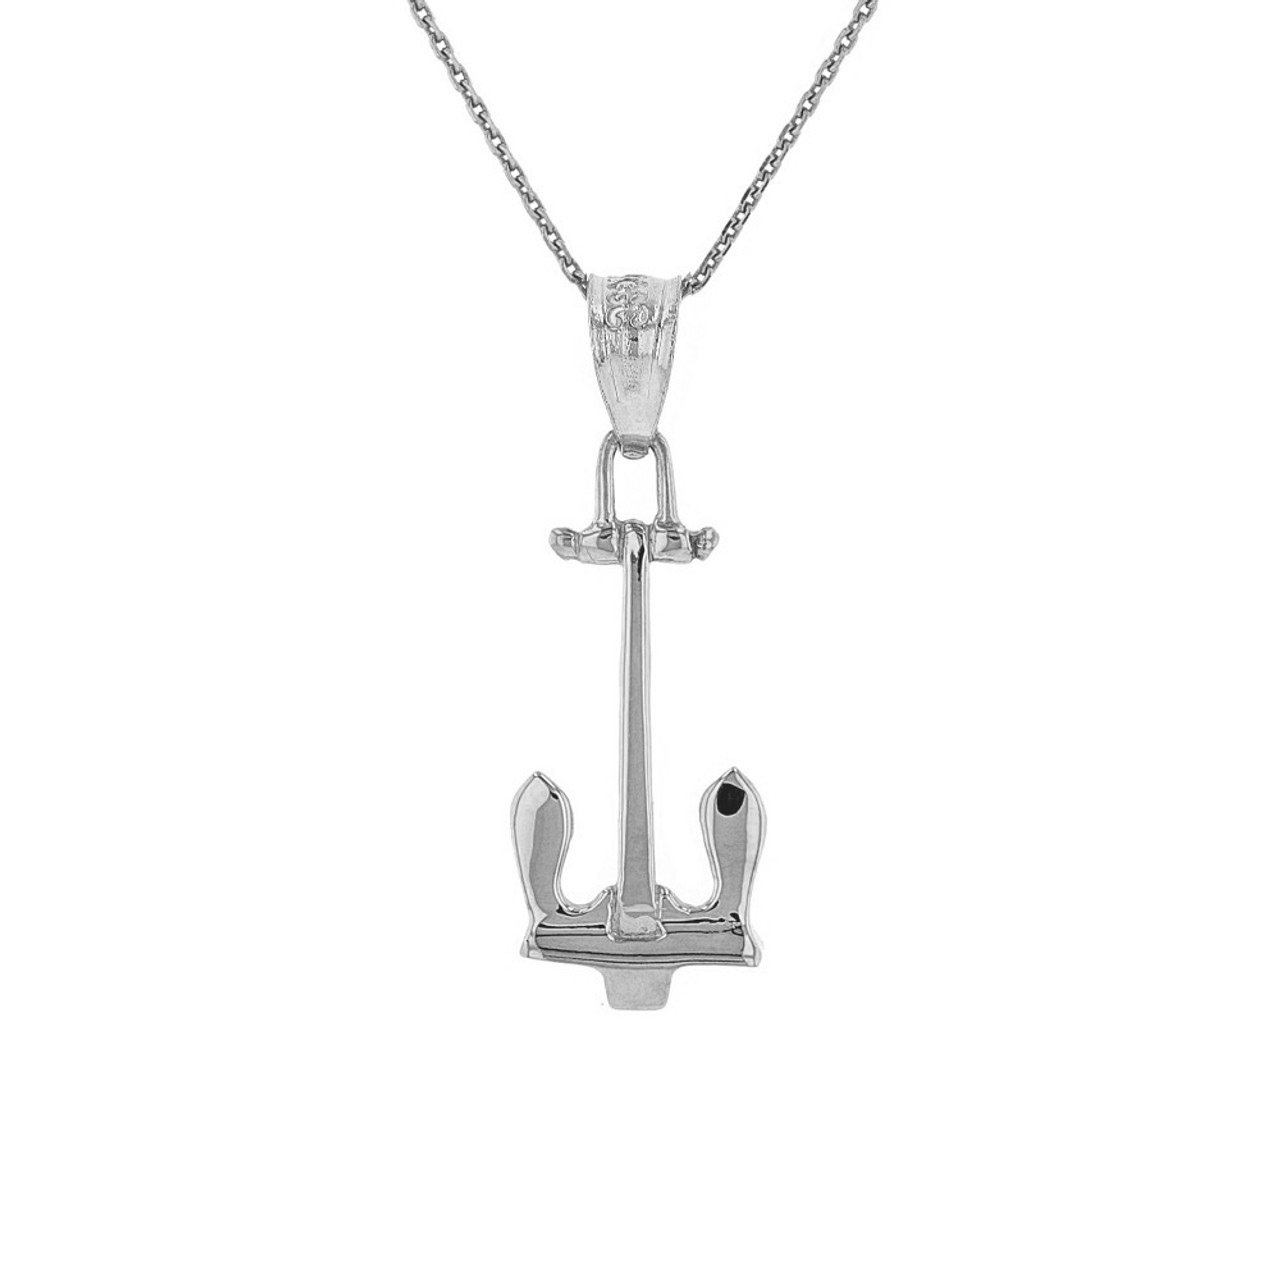 Sterling silver us navy stockless anchor pendant necklace aloadofball Image collections